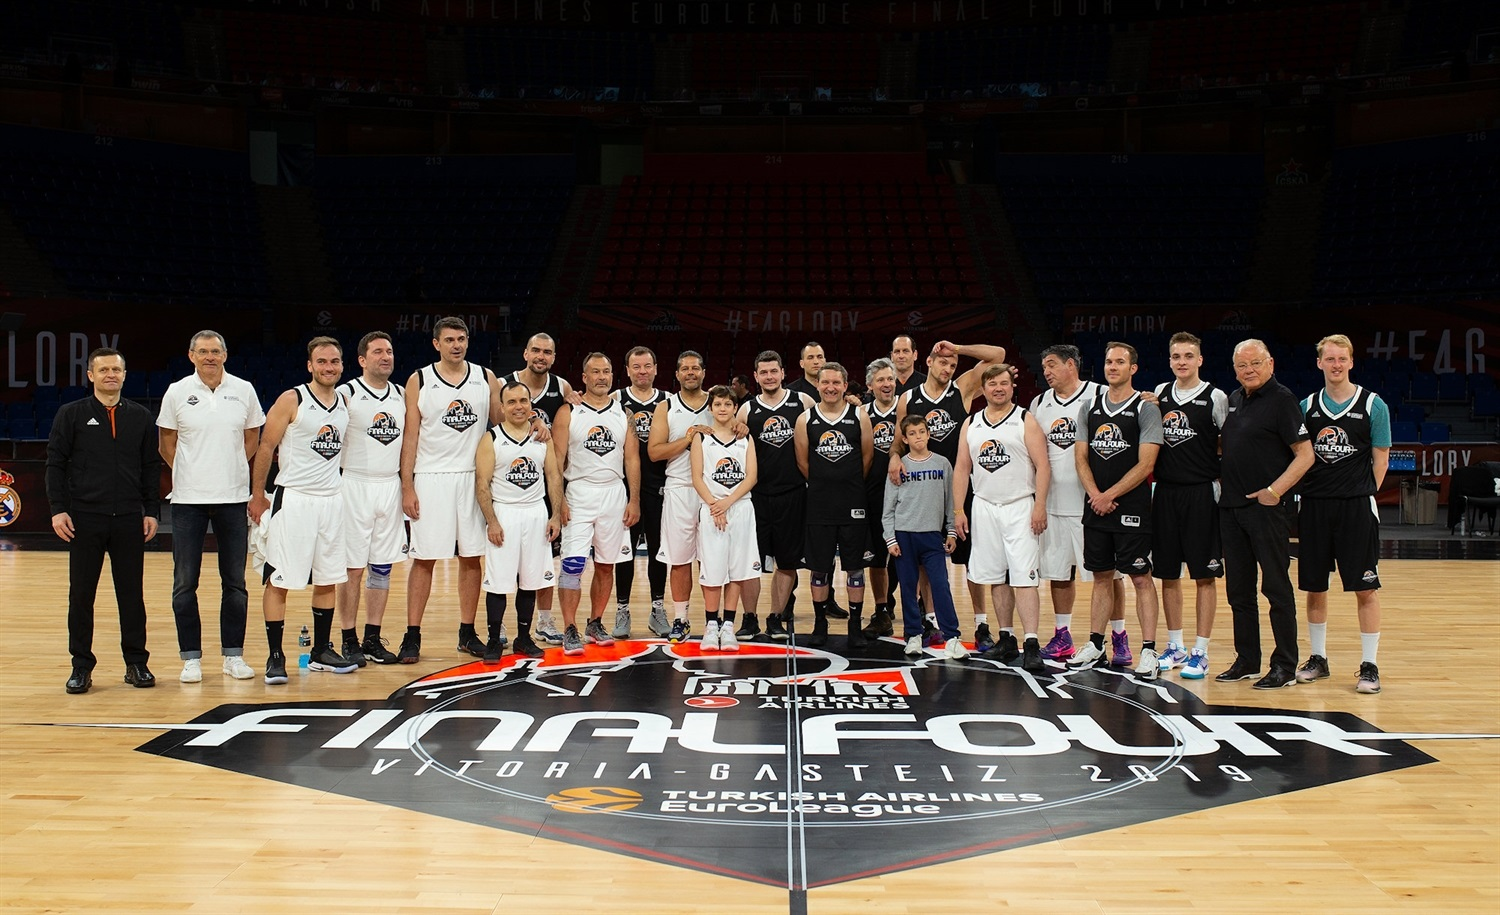 Platinum & Ambassadors Game - Final Four Vitoria-Gasteiz 2019 - EB18